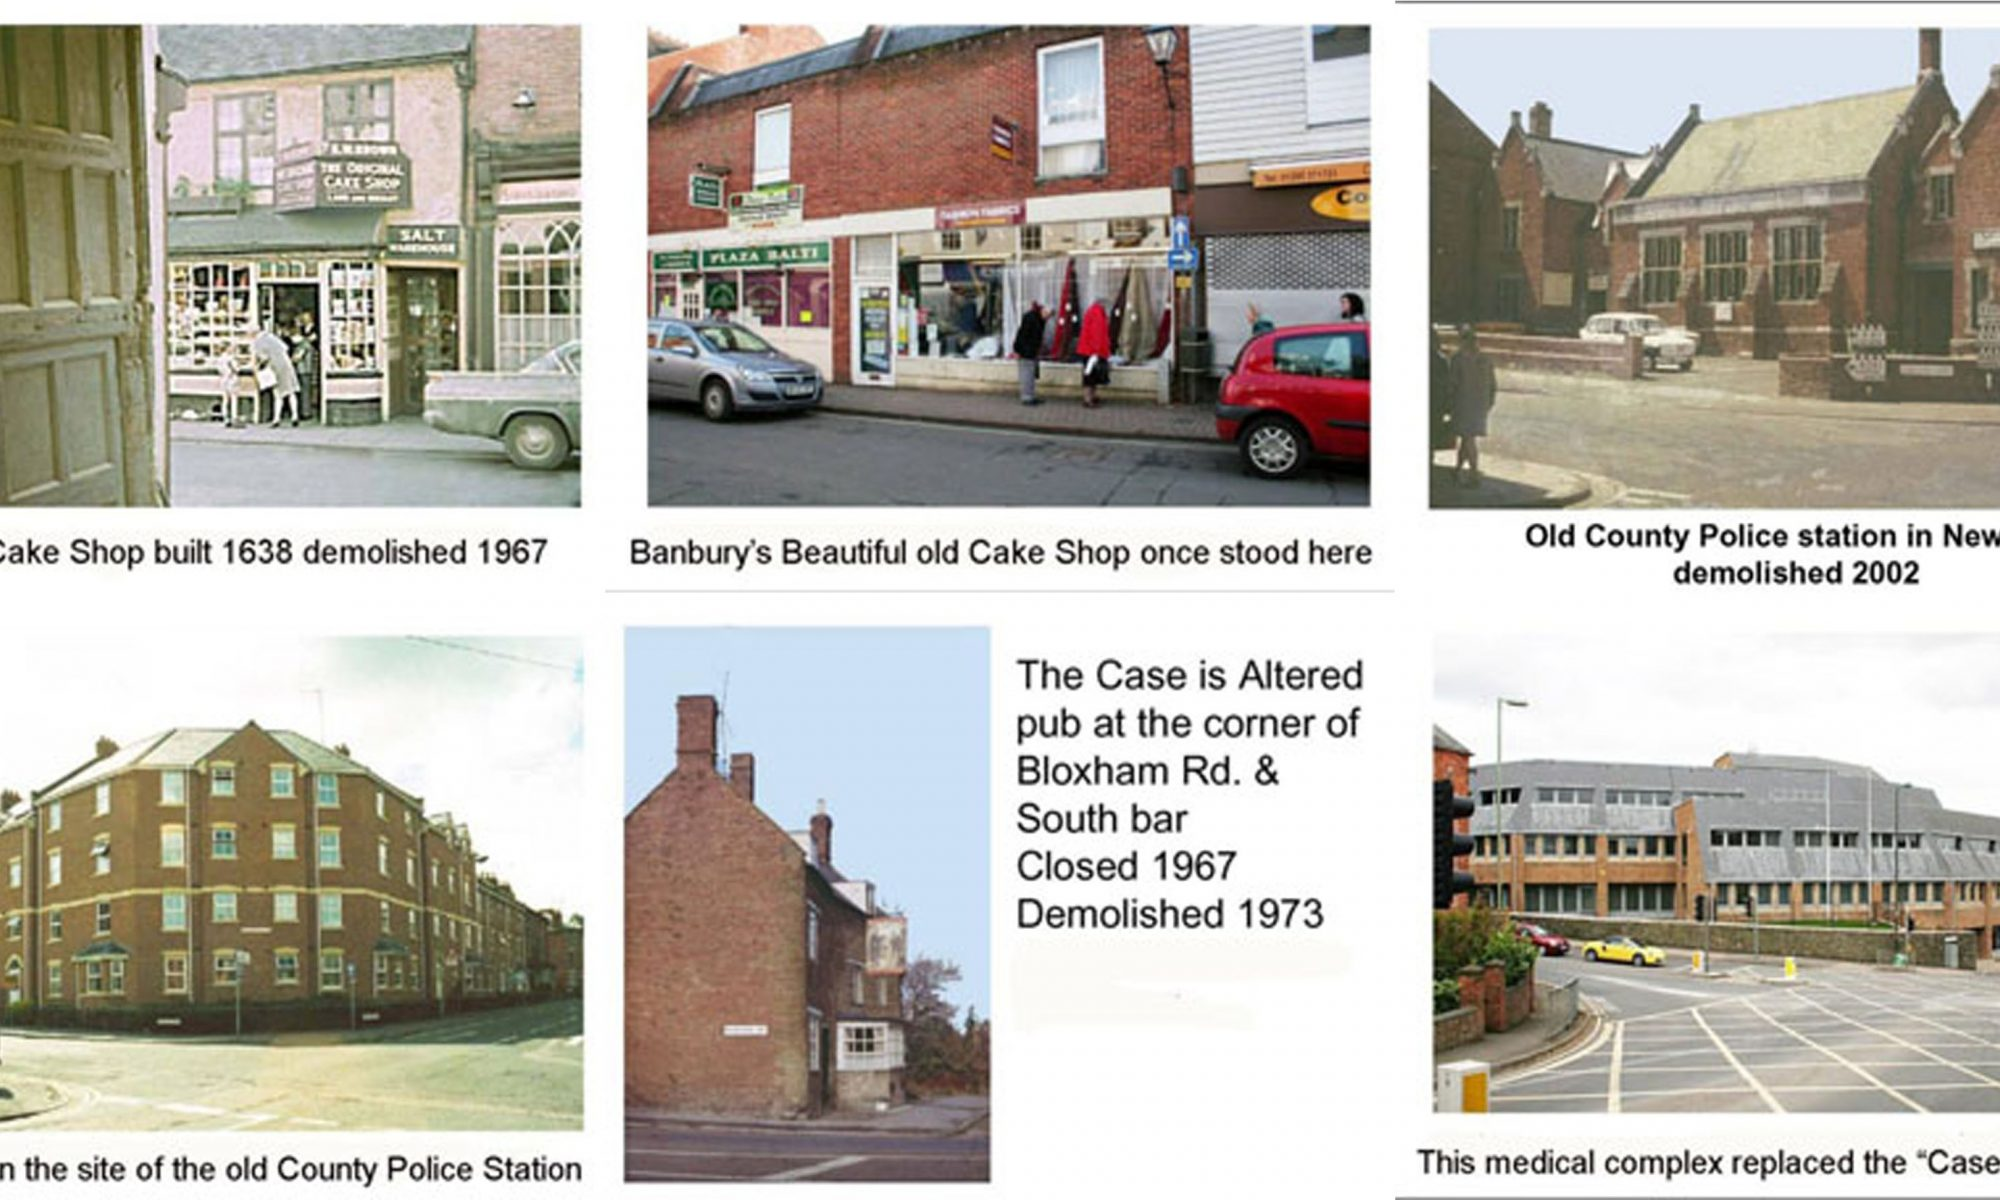 Images of Banbury